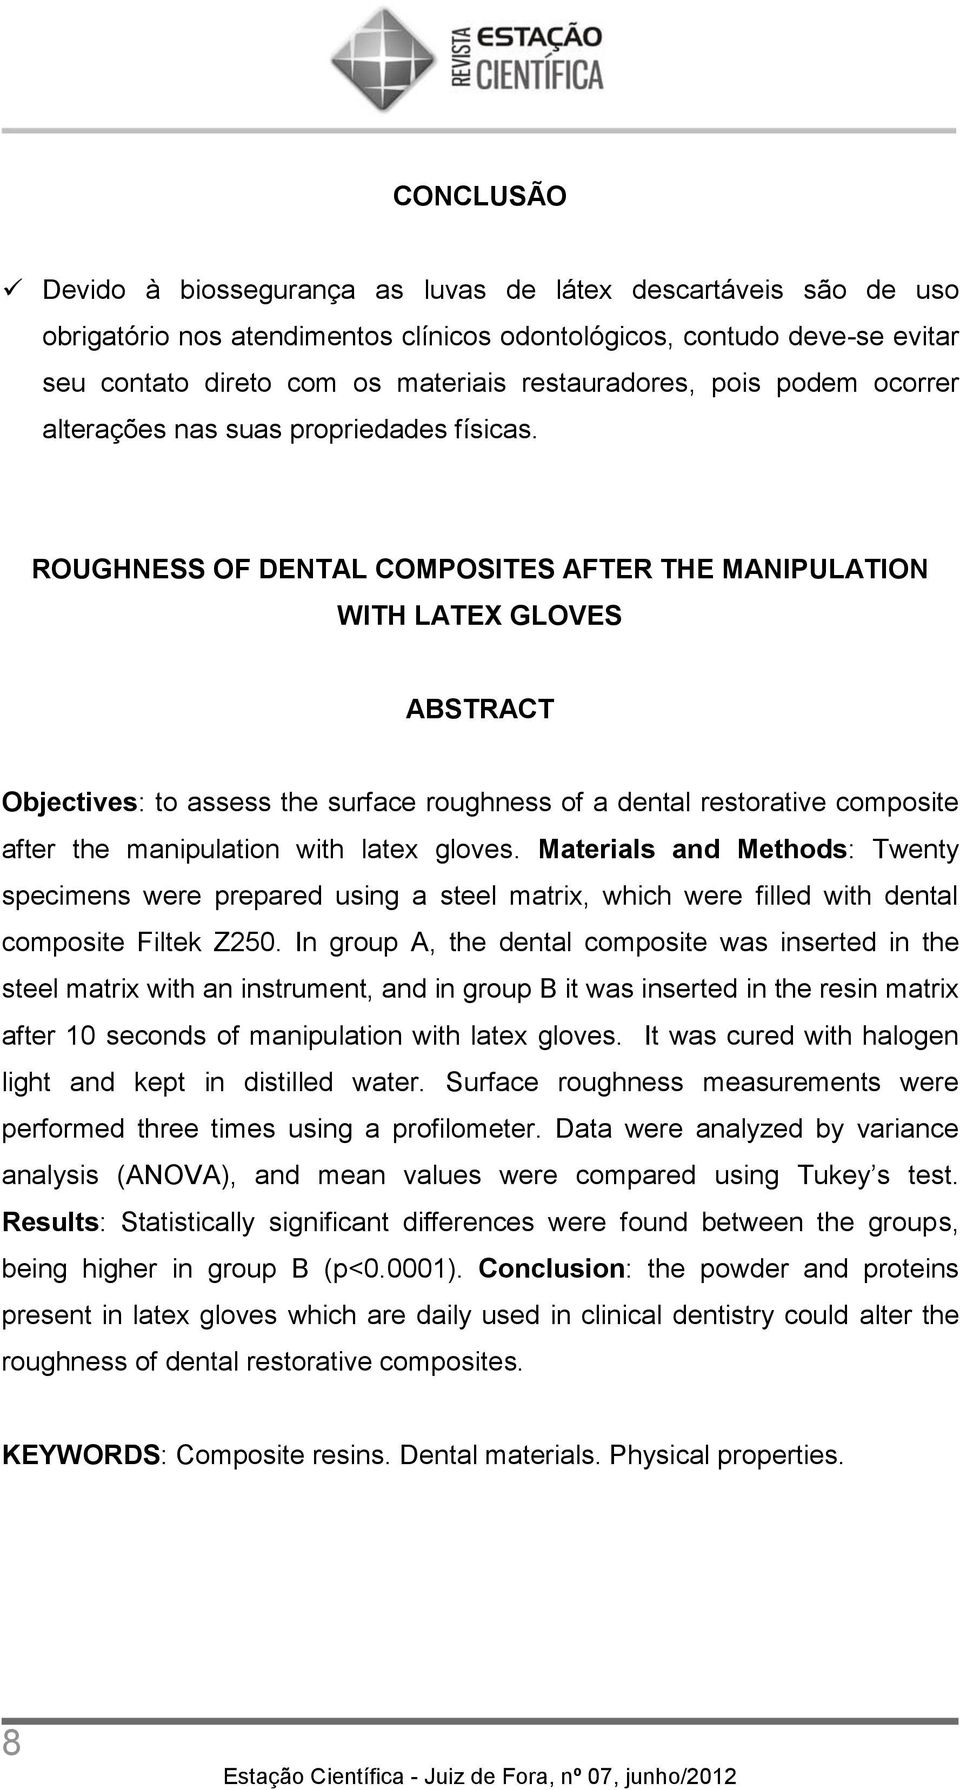 ROUGHNESS OF DENTAL COMPOSITES AFTER THE MANIPULATION WITH LATEX GLOVES ABSTRACT Objectives: to assess the surface roughness of a dental restorative composite after the manipulation with latex gloves.